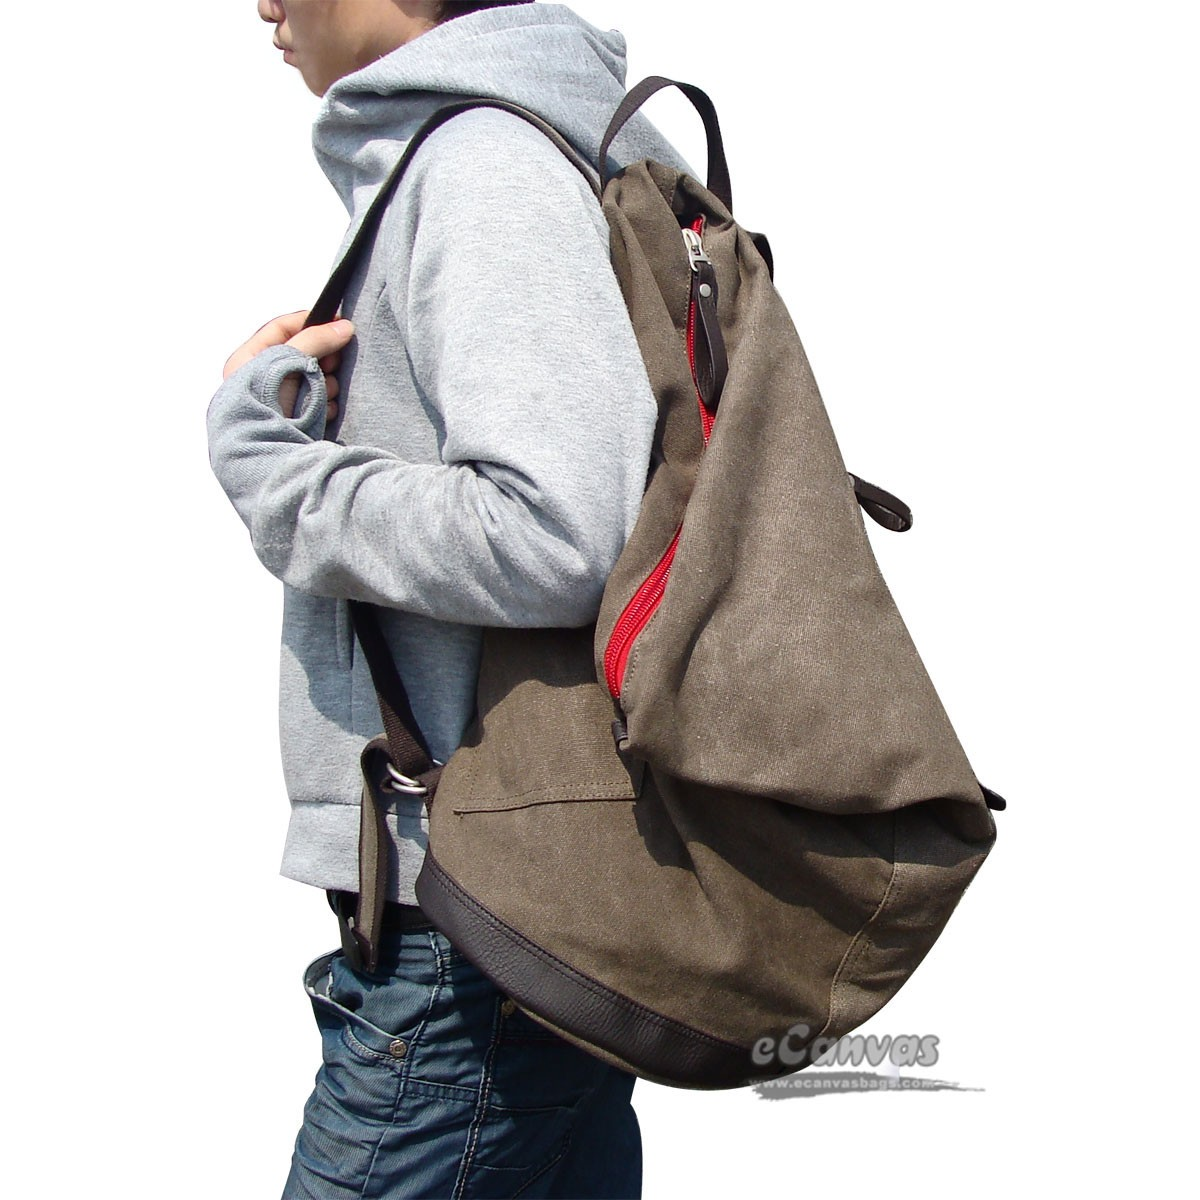 travel backpack recommendations Backpack Tools